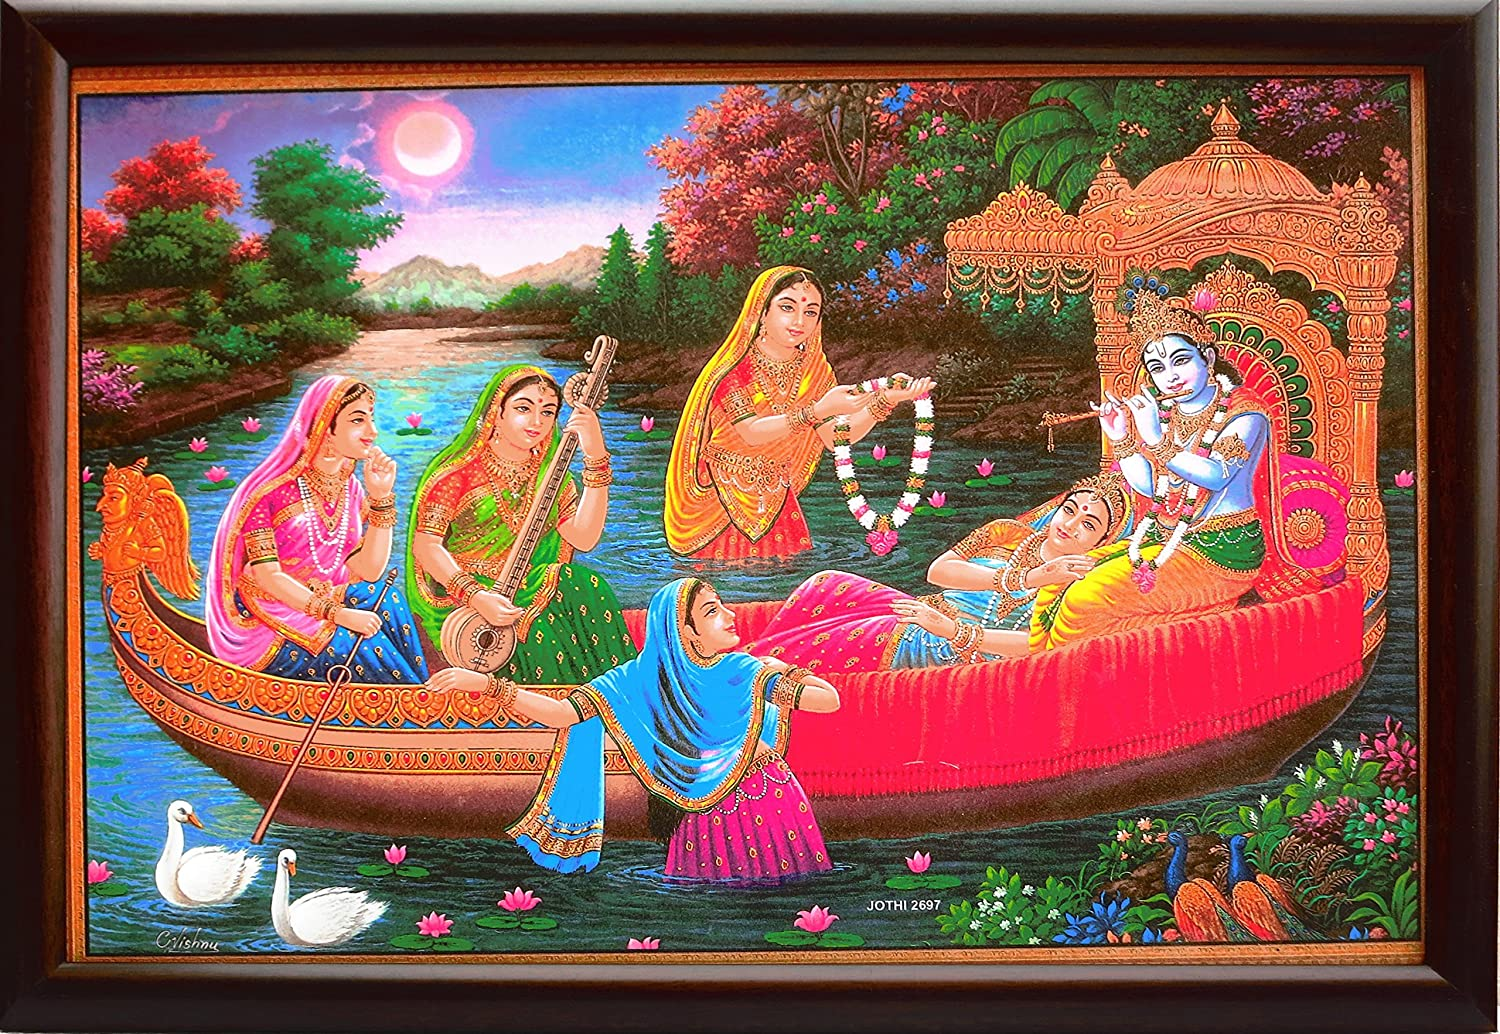 Lord Krishna seating in boat and playing flute and Radha and her dasi playing musical instruments, A Elegant and Modern Art Poster painting for Home Décor and Religious purpose